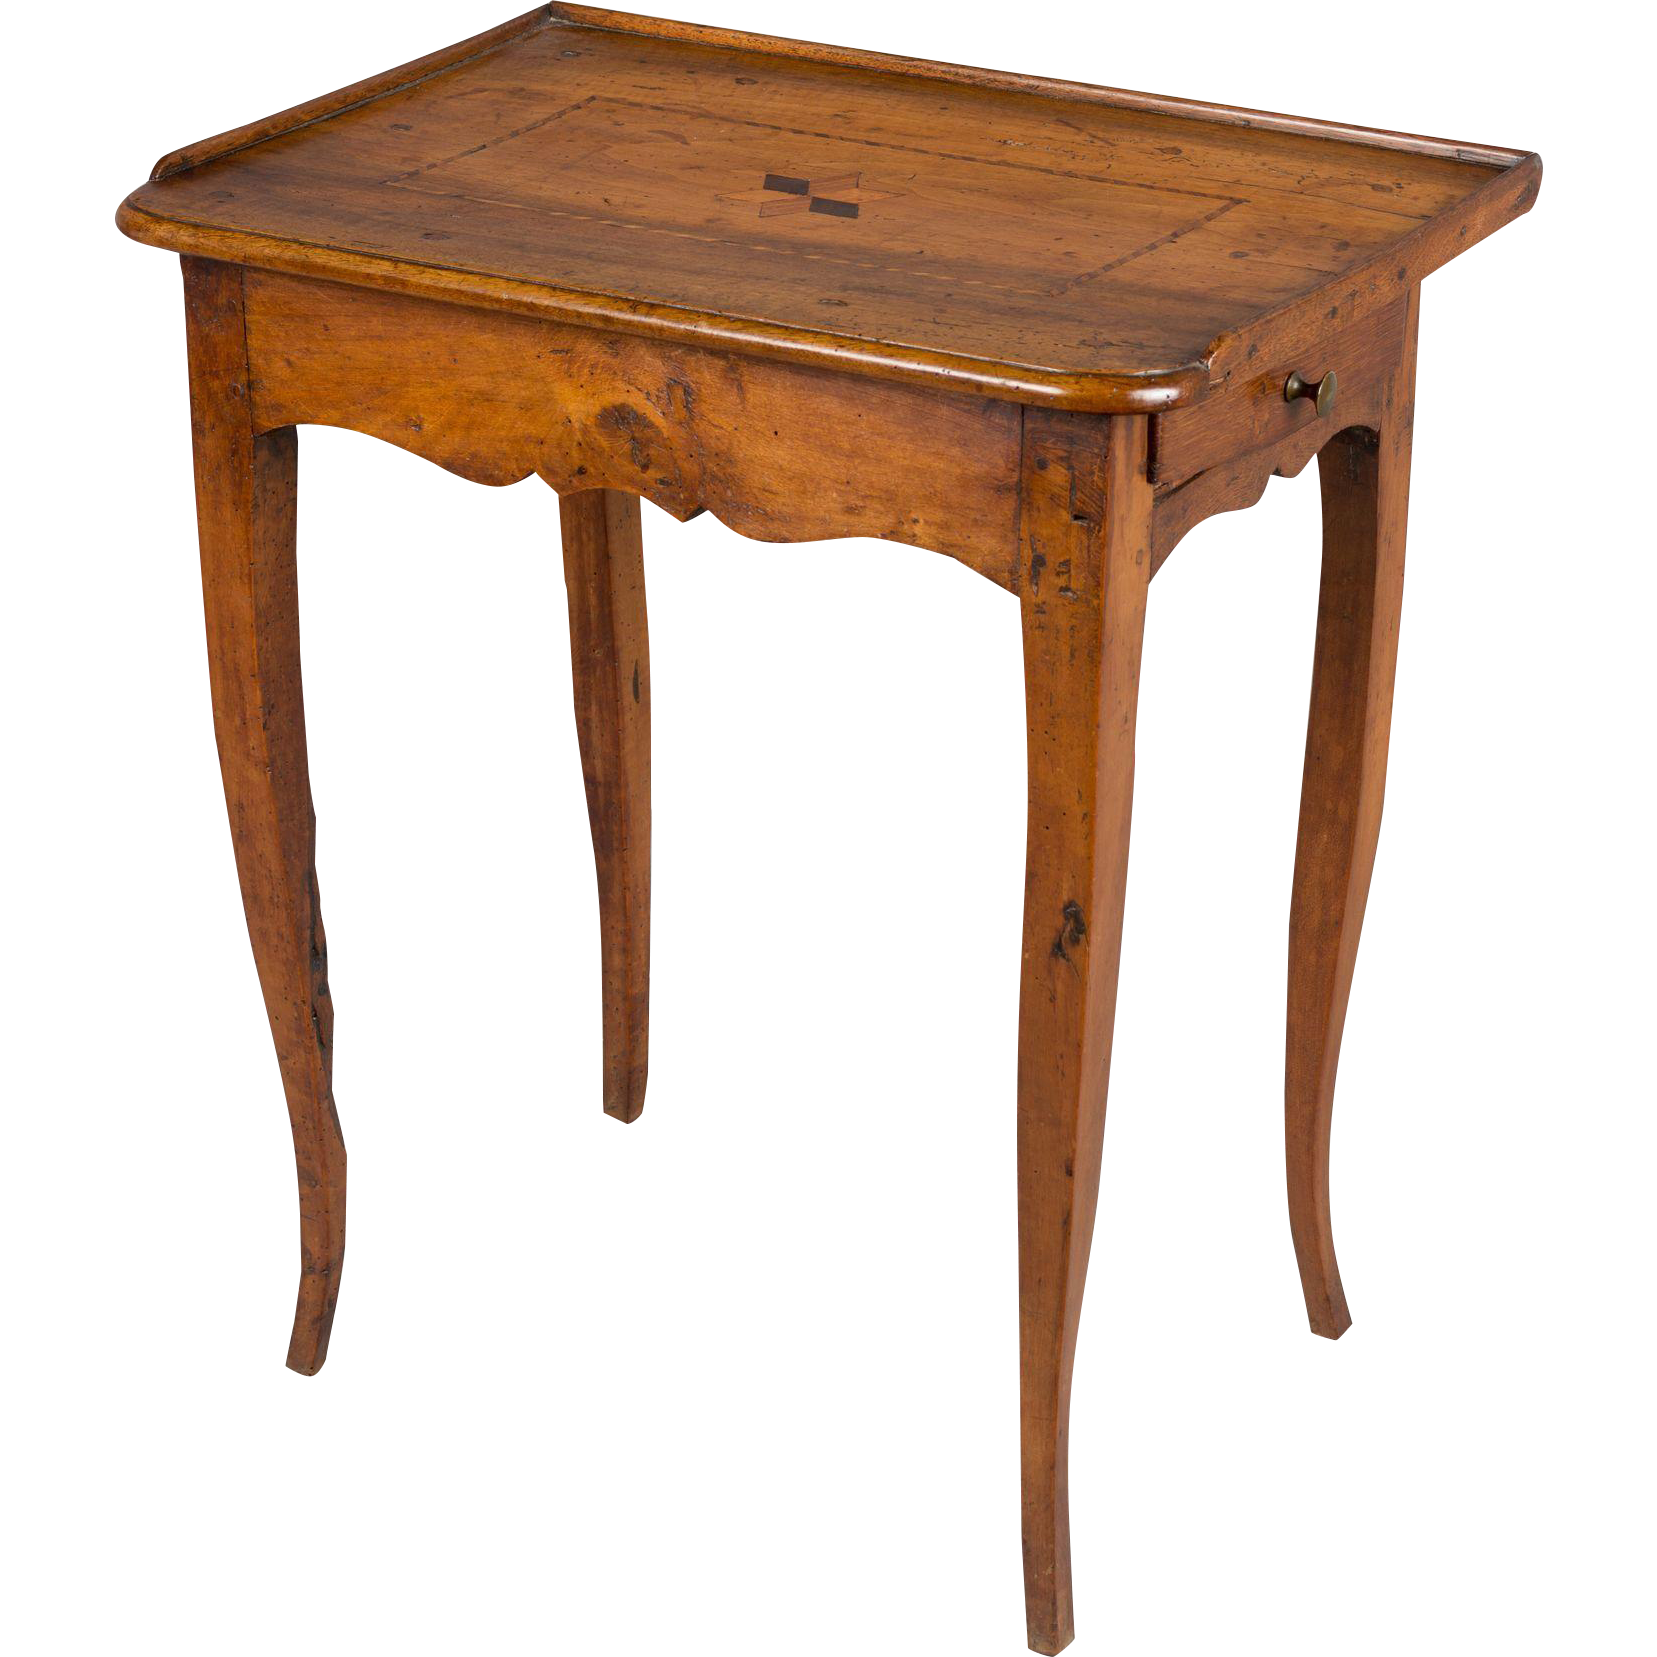 18th century louis xv side table from ofleury on ruby lane - Table louis xv ...